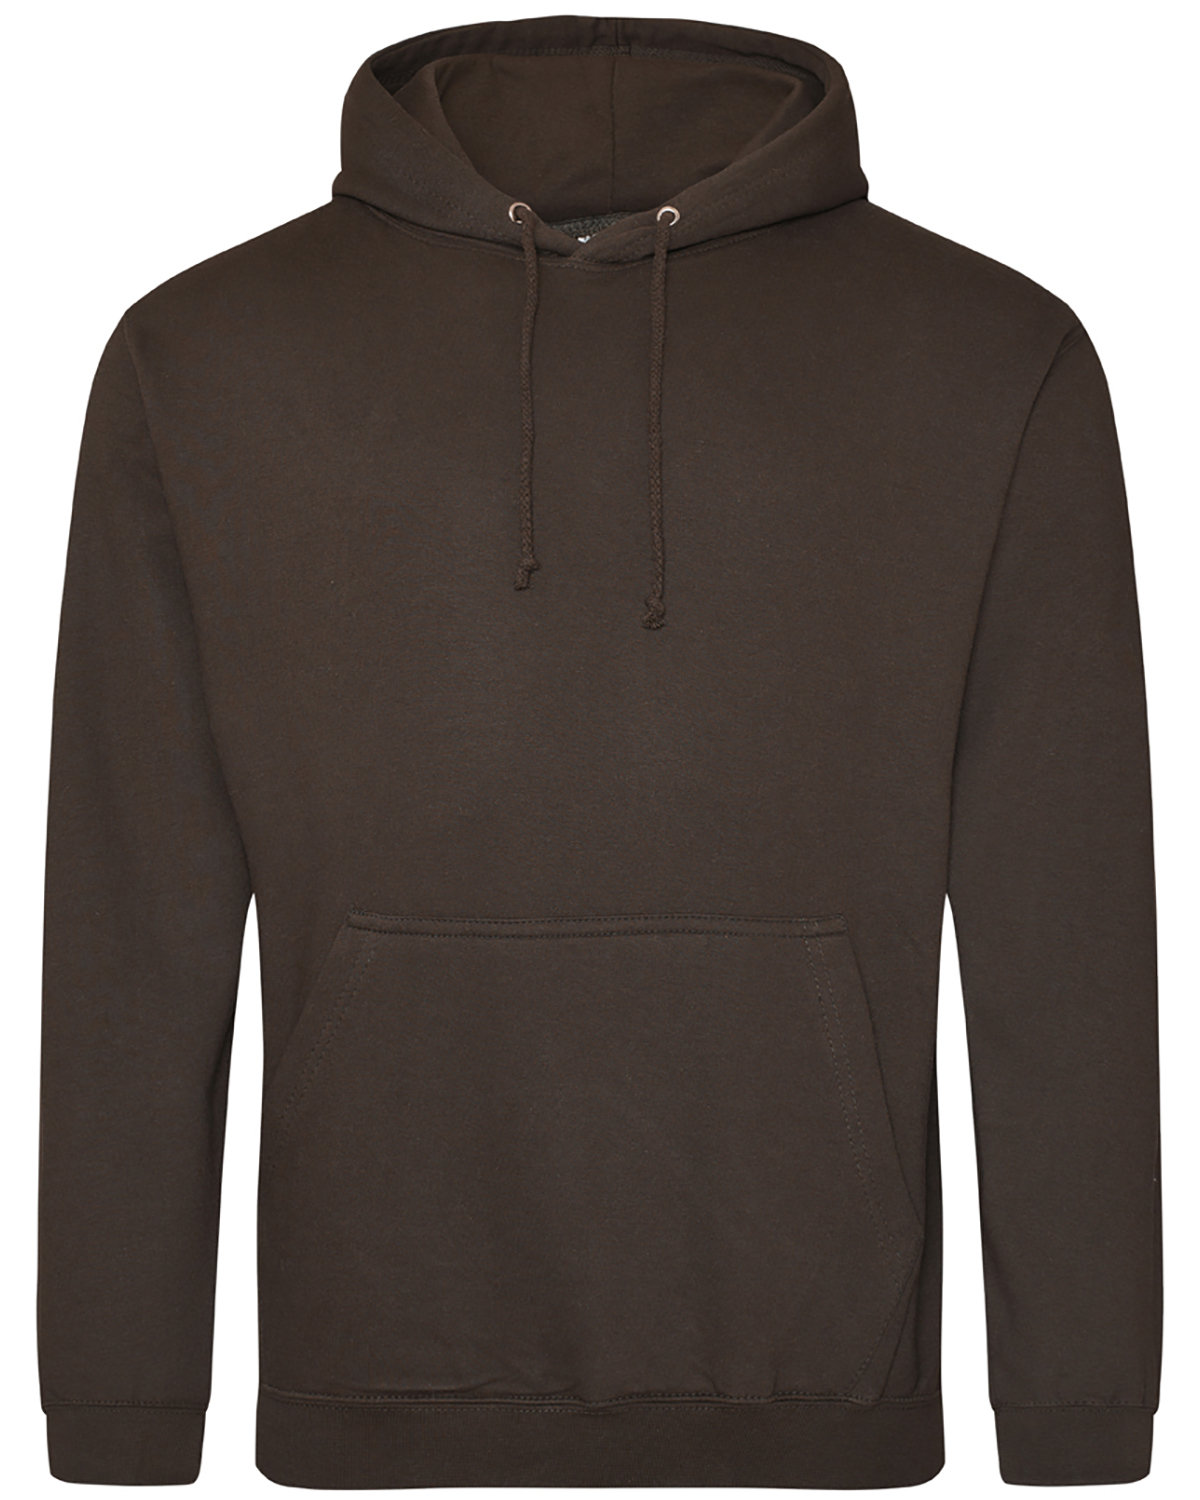 Just Hoods By AWDis Men's 80/20 Midweight College Hooded Sweatshirt HOT CHOCOLATE